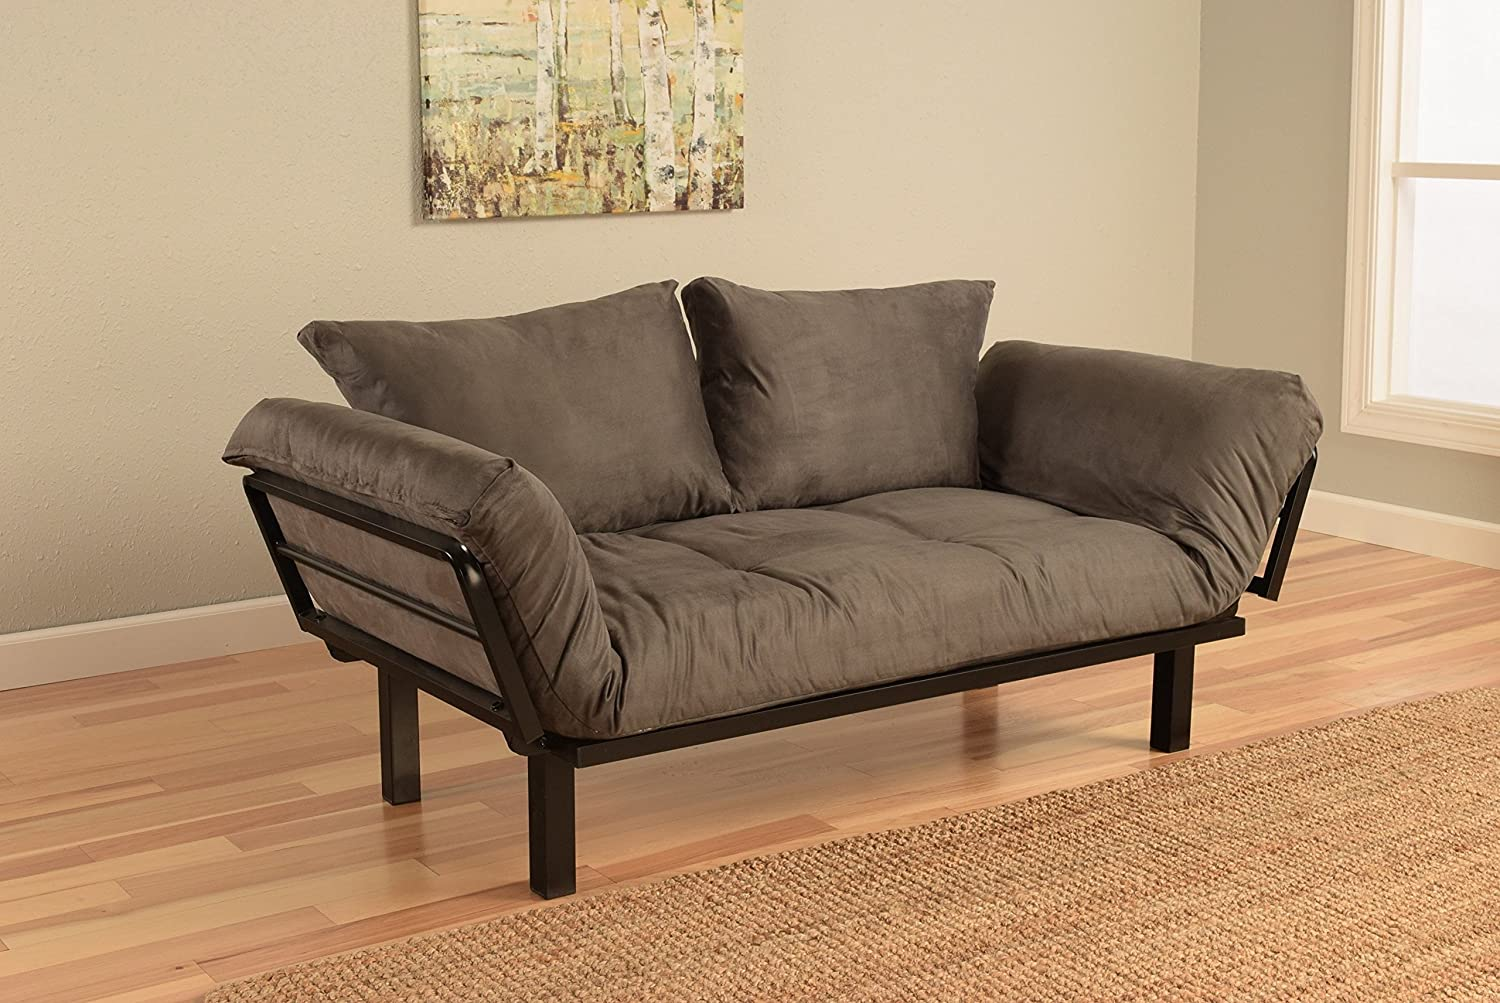 couch androidtips futons rooms co loveseat room small sofas dorm for